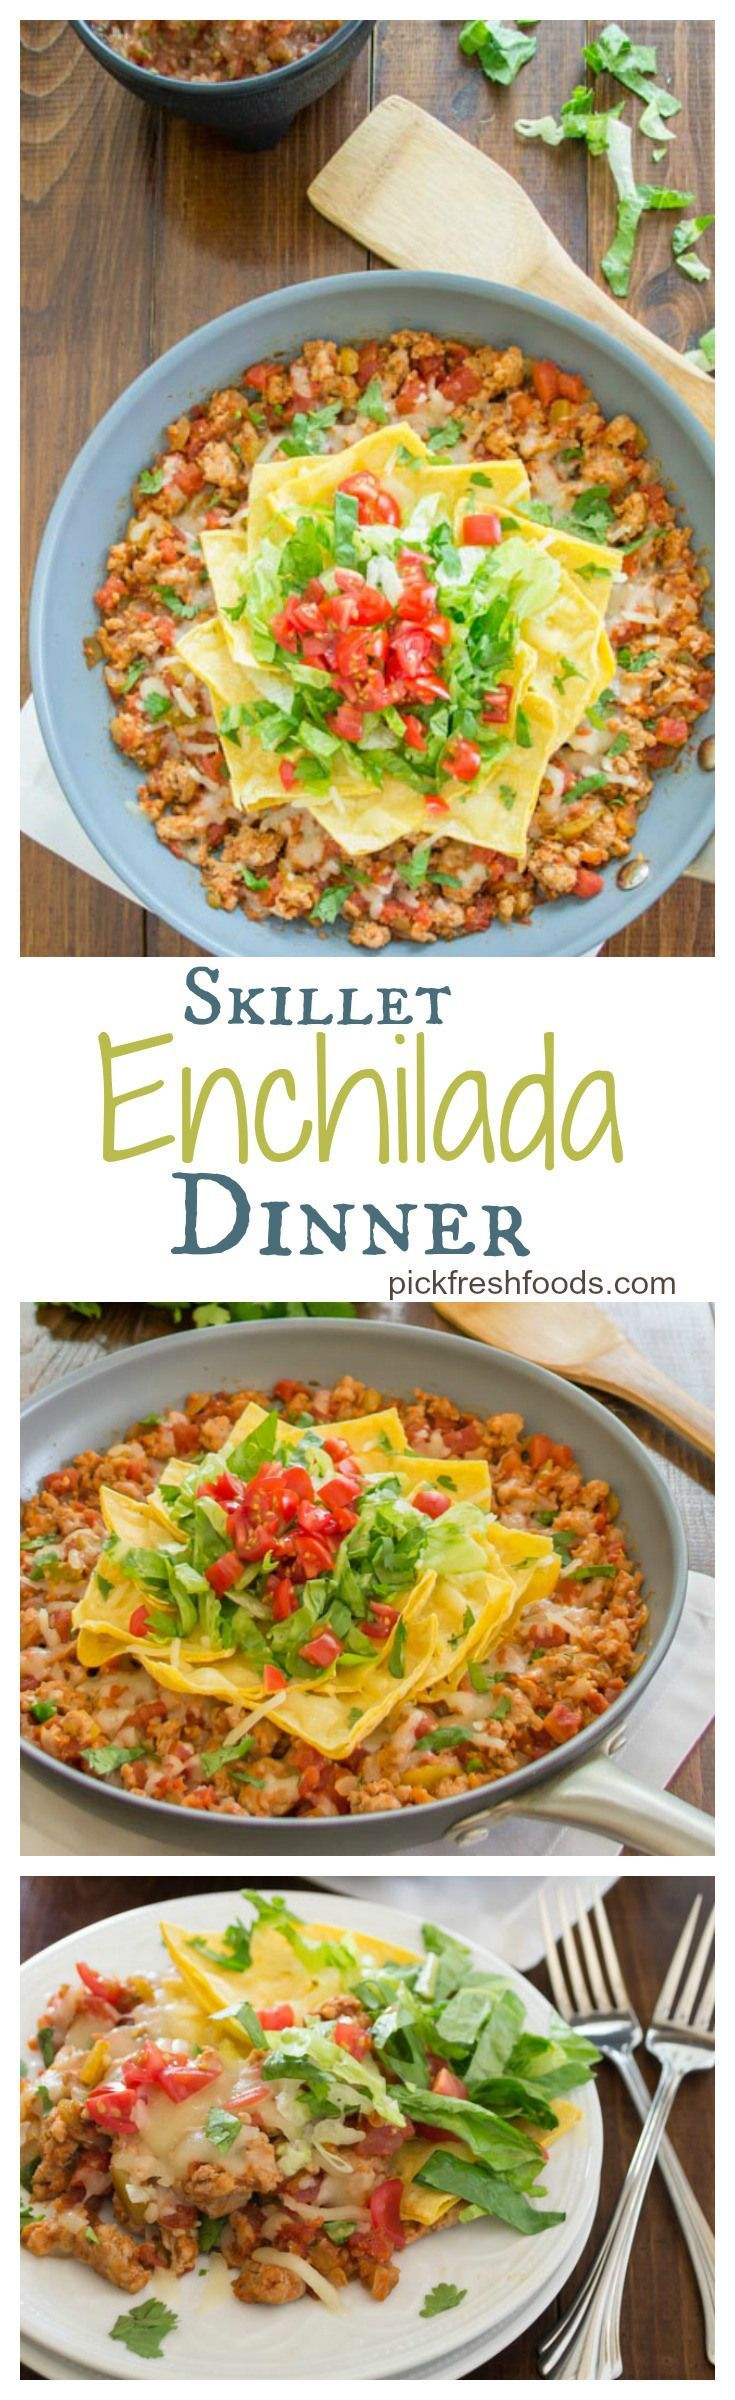 Skillet Enchilada Dinner...delicious Mexican dinner, full of big fresh flavors.